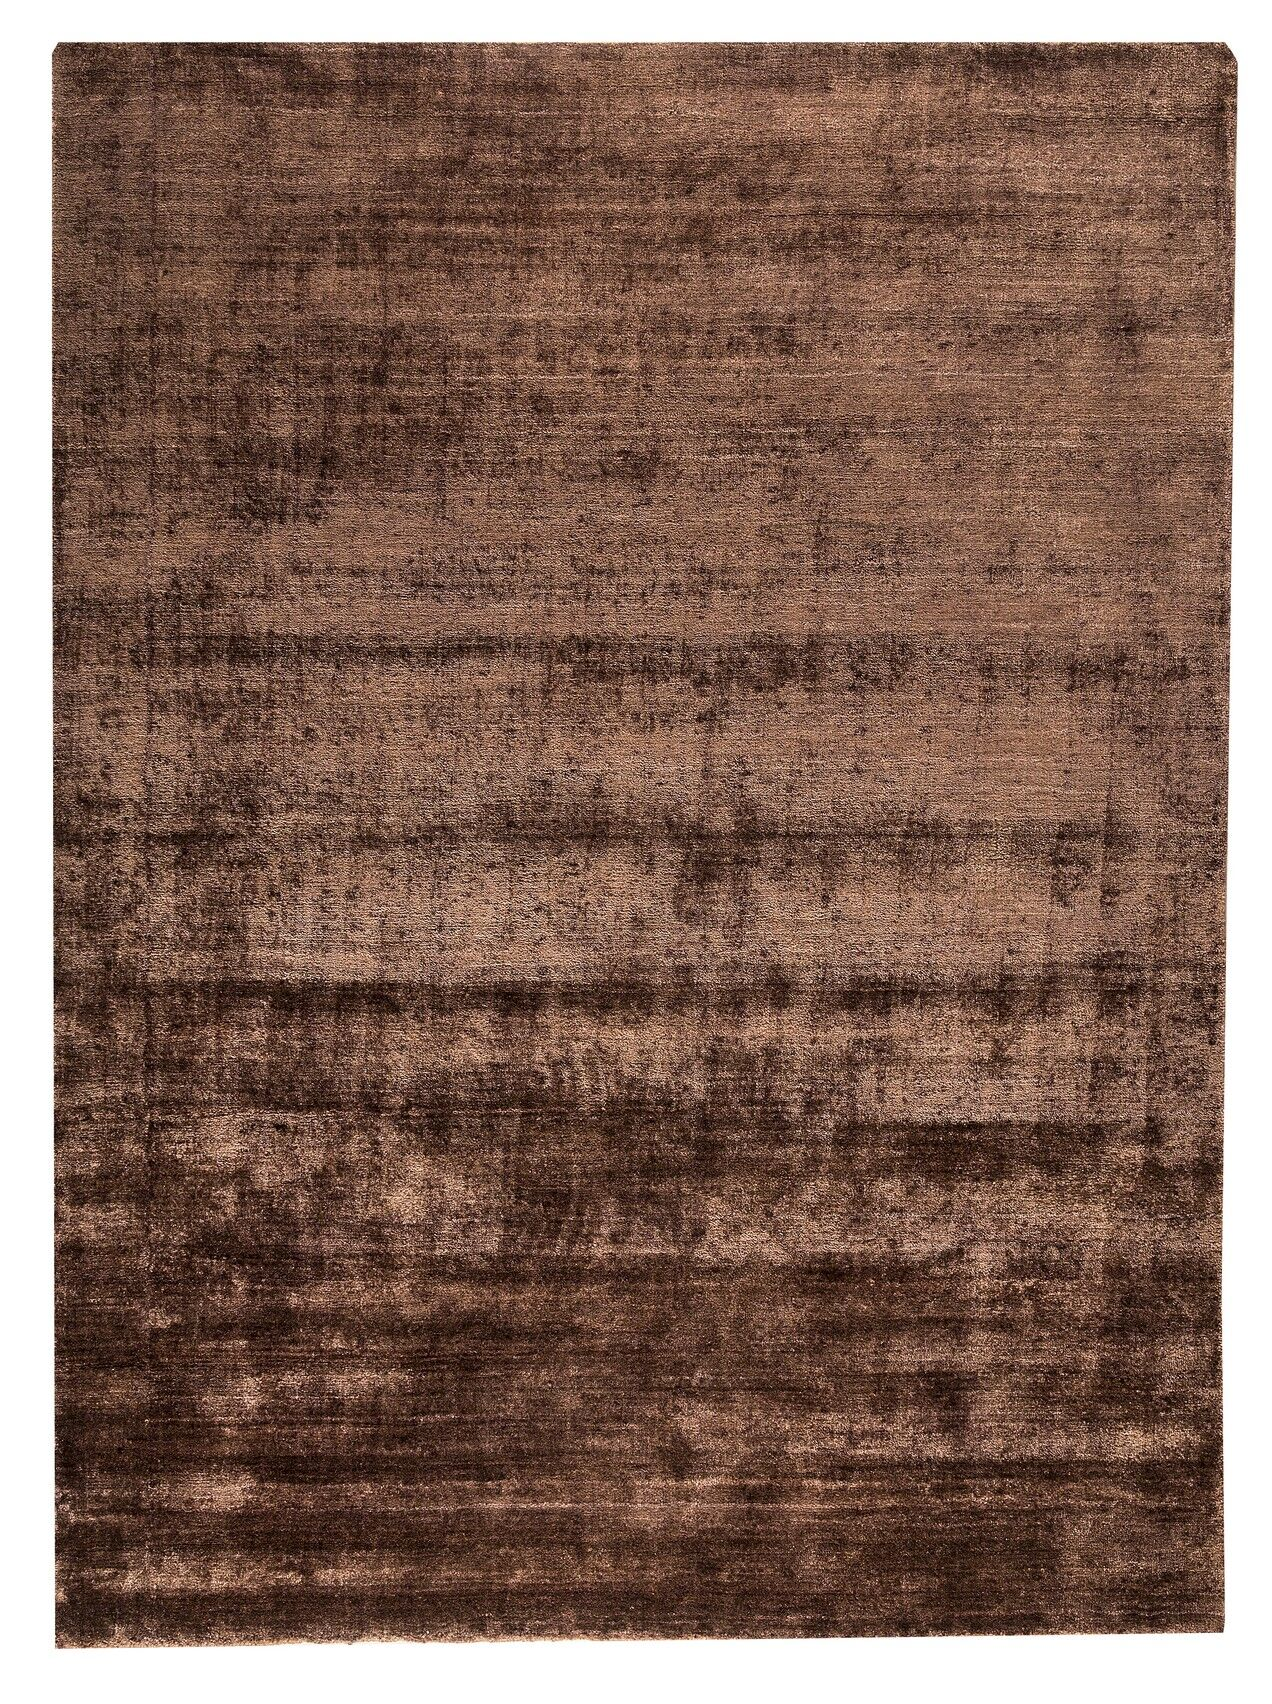 Platinum Hand-Woven Plum Area Rug Rug Size: 5'6